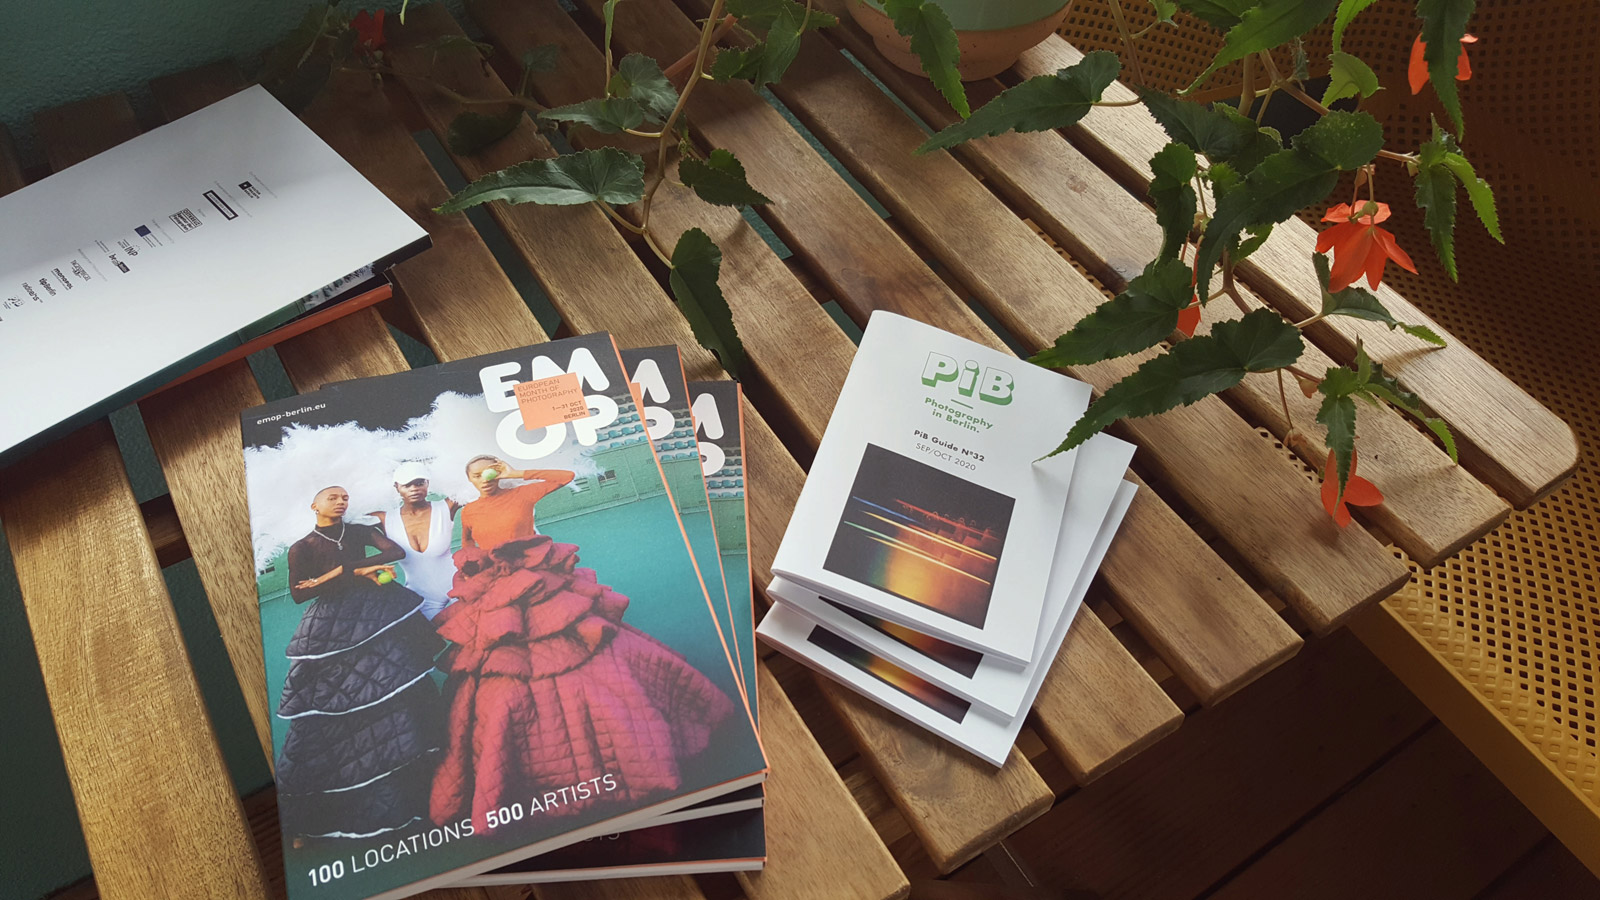 On the left: EMOP Berlin 2020 catalogue © Kulturprojekte Berlin | On the right: PiB Guide Nº32 SEP/OCT 2020 © PiB Photography in Berlin